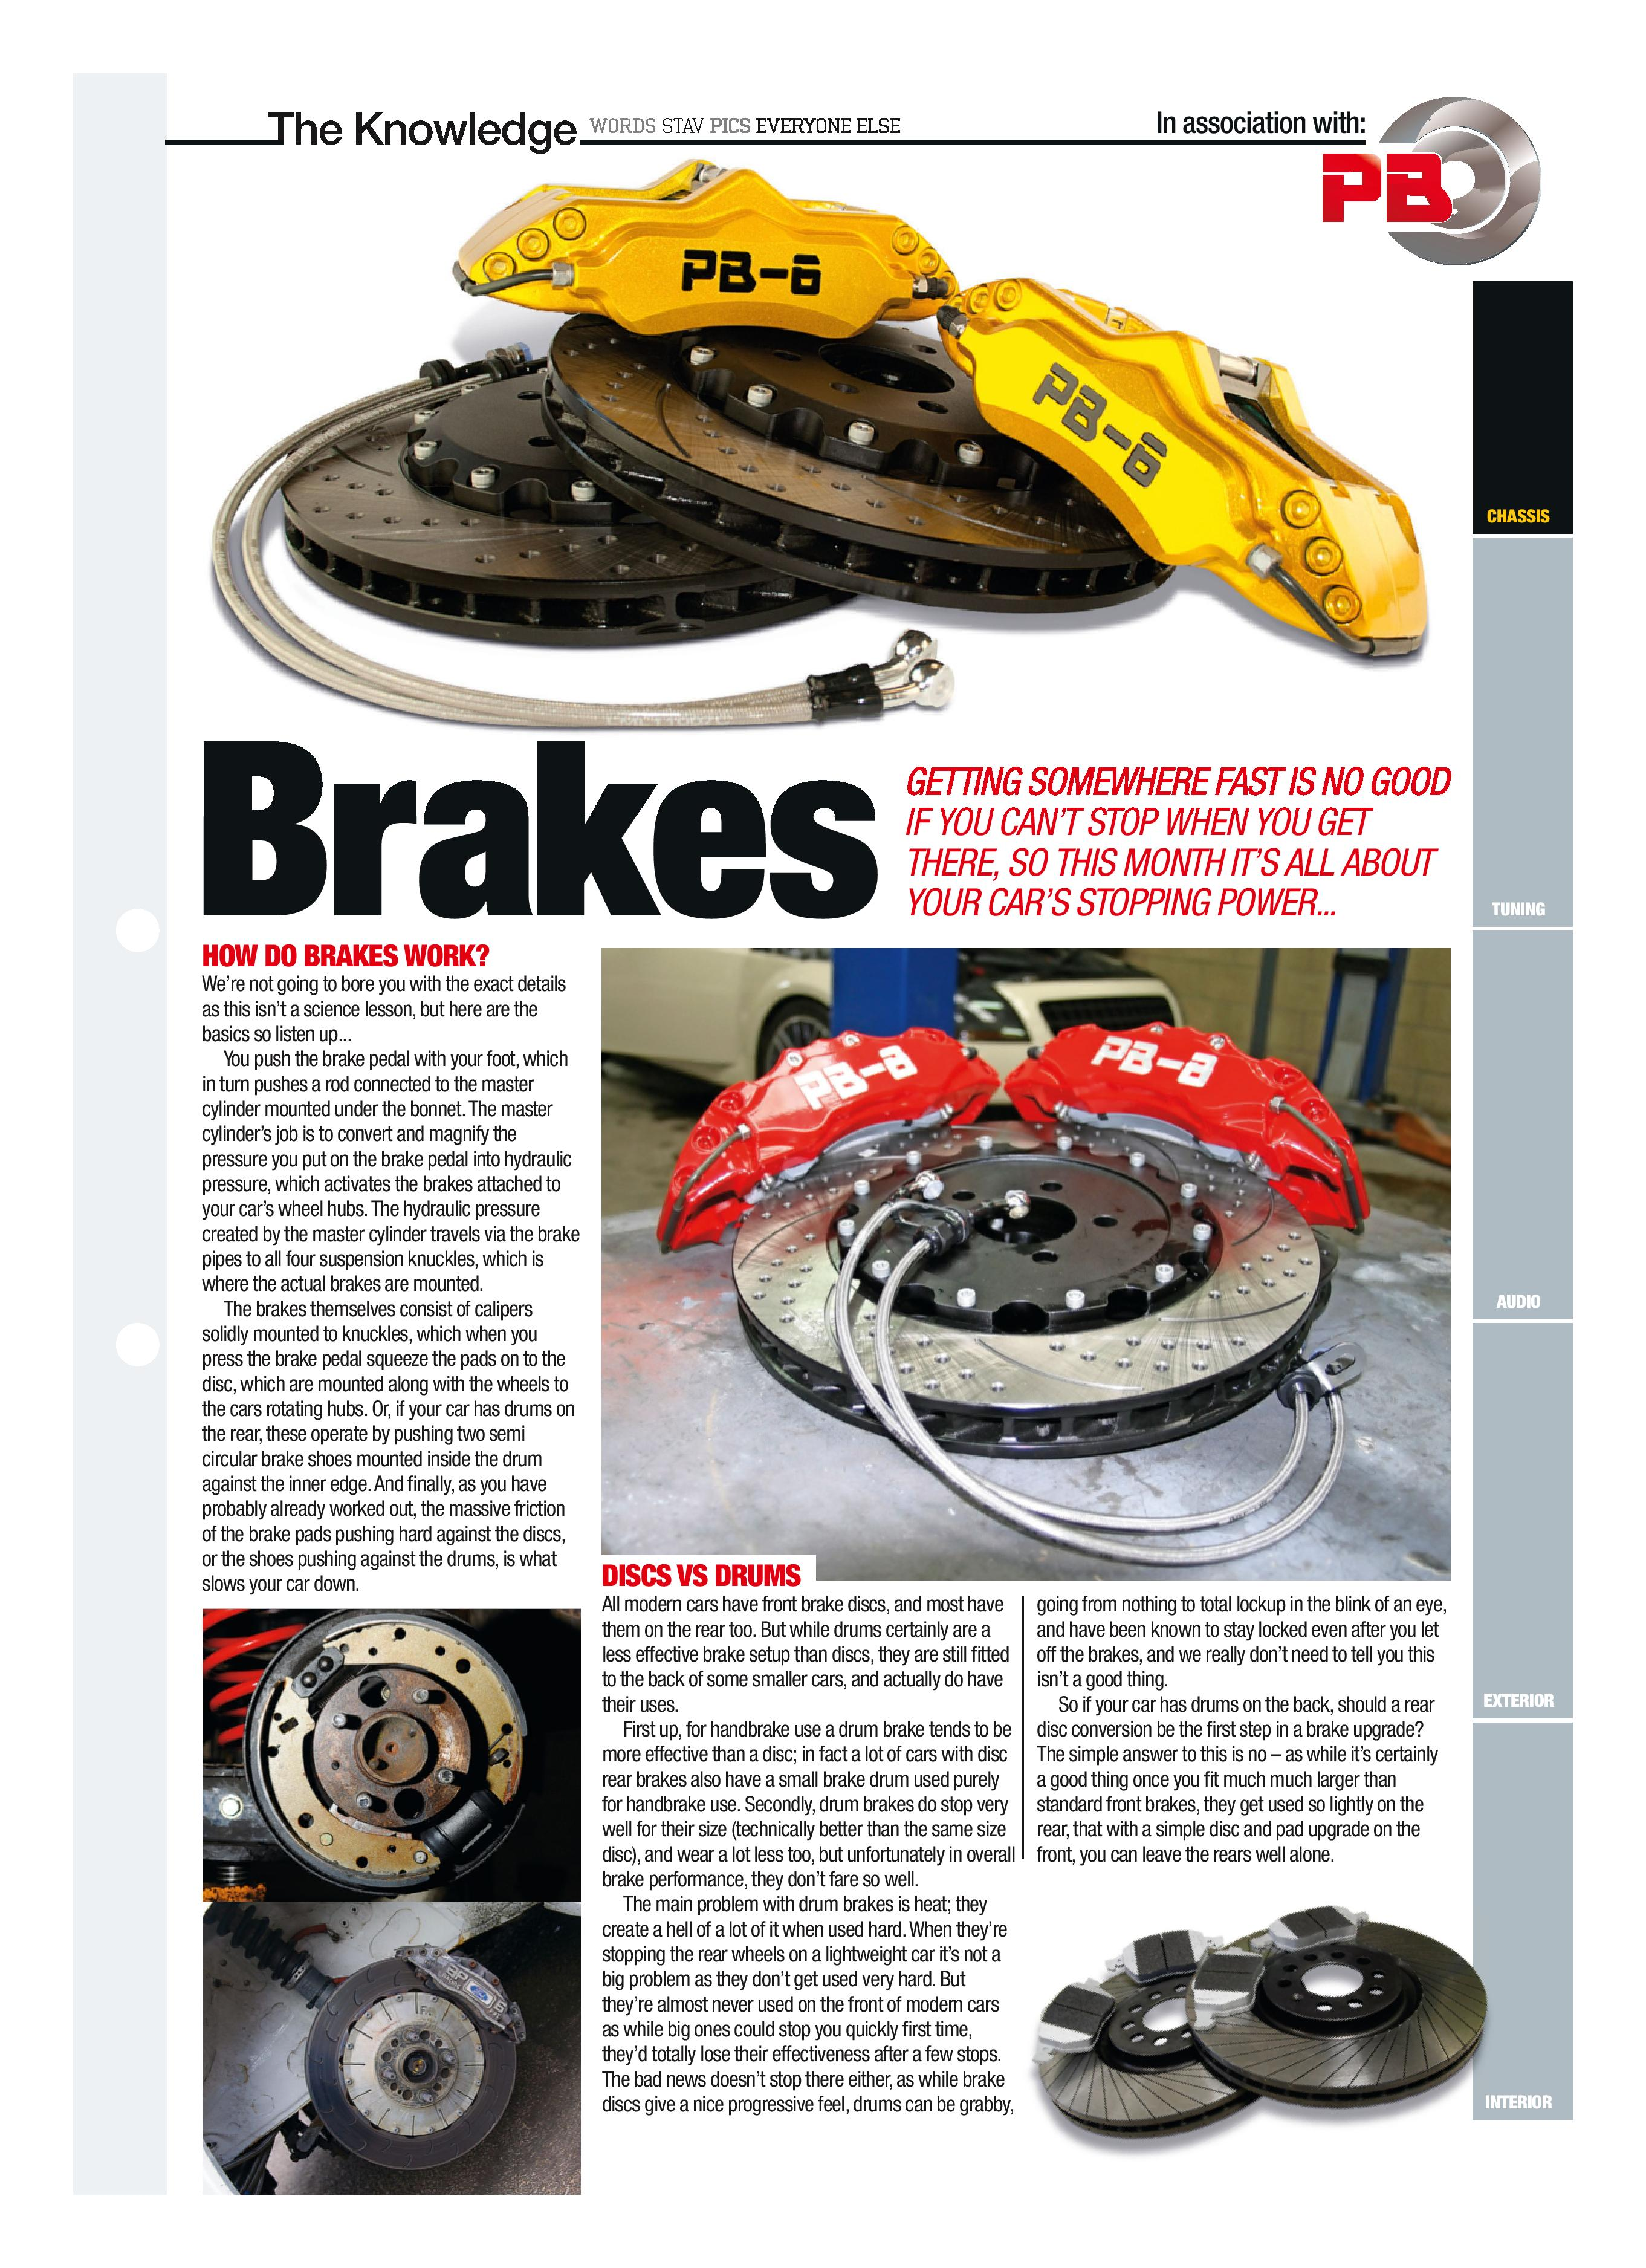 Fast Car Magazine brake feature sponsored by PB